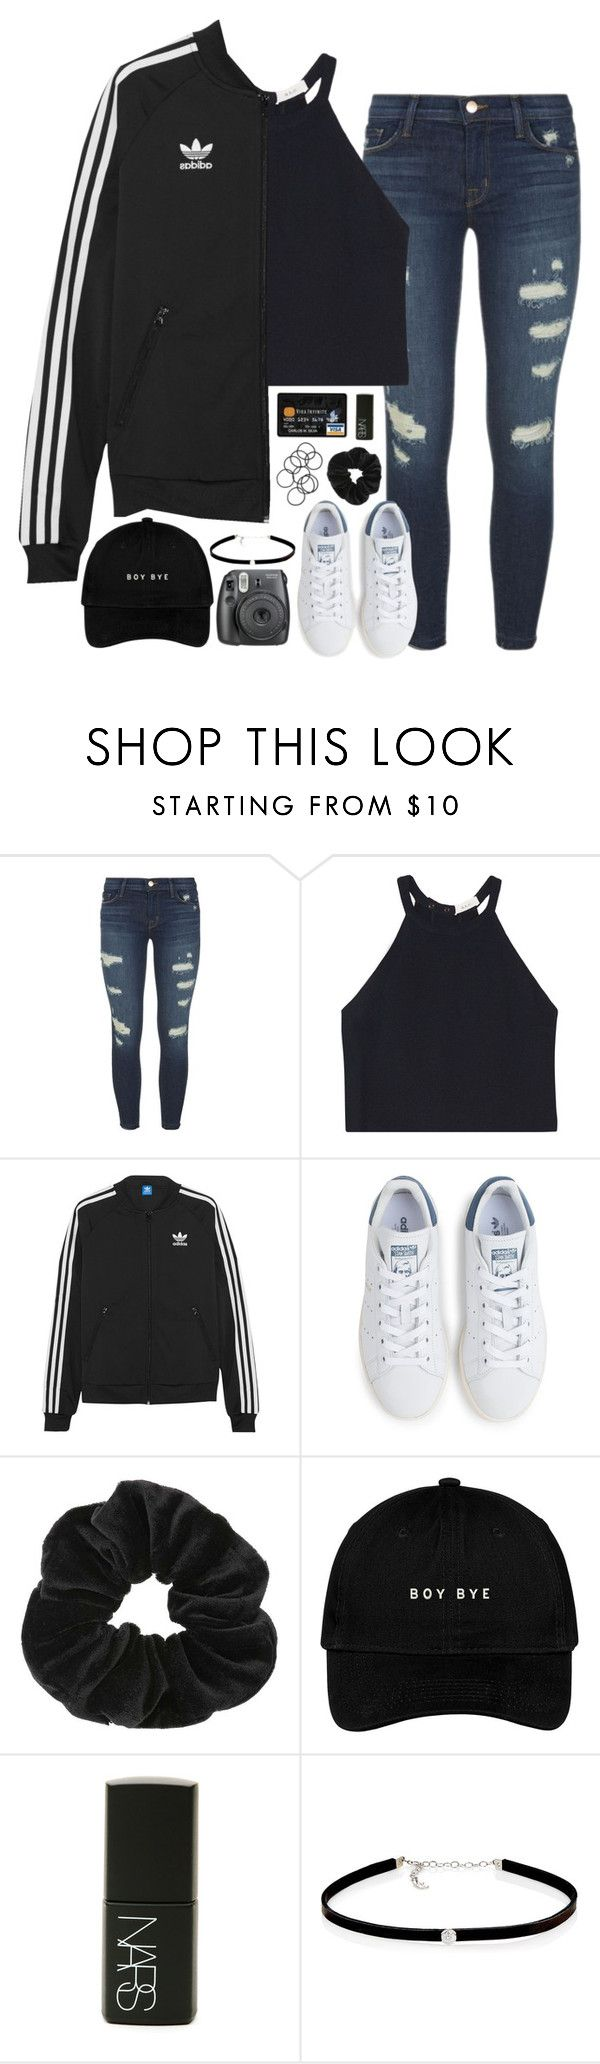 """""""can't wait for grey's anatomy!!"""" by sarahc01 ❤ liked on Polyvore featuring J Brand, A.L.C., adidas Originals, adidas, Miss Selfridge, NARS Cosmetics, Carbon & Hyde, Fujifilm and H&M"""